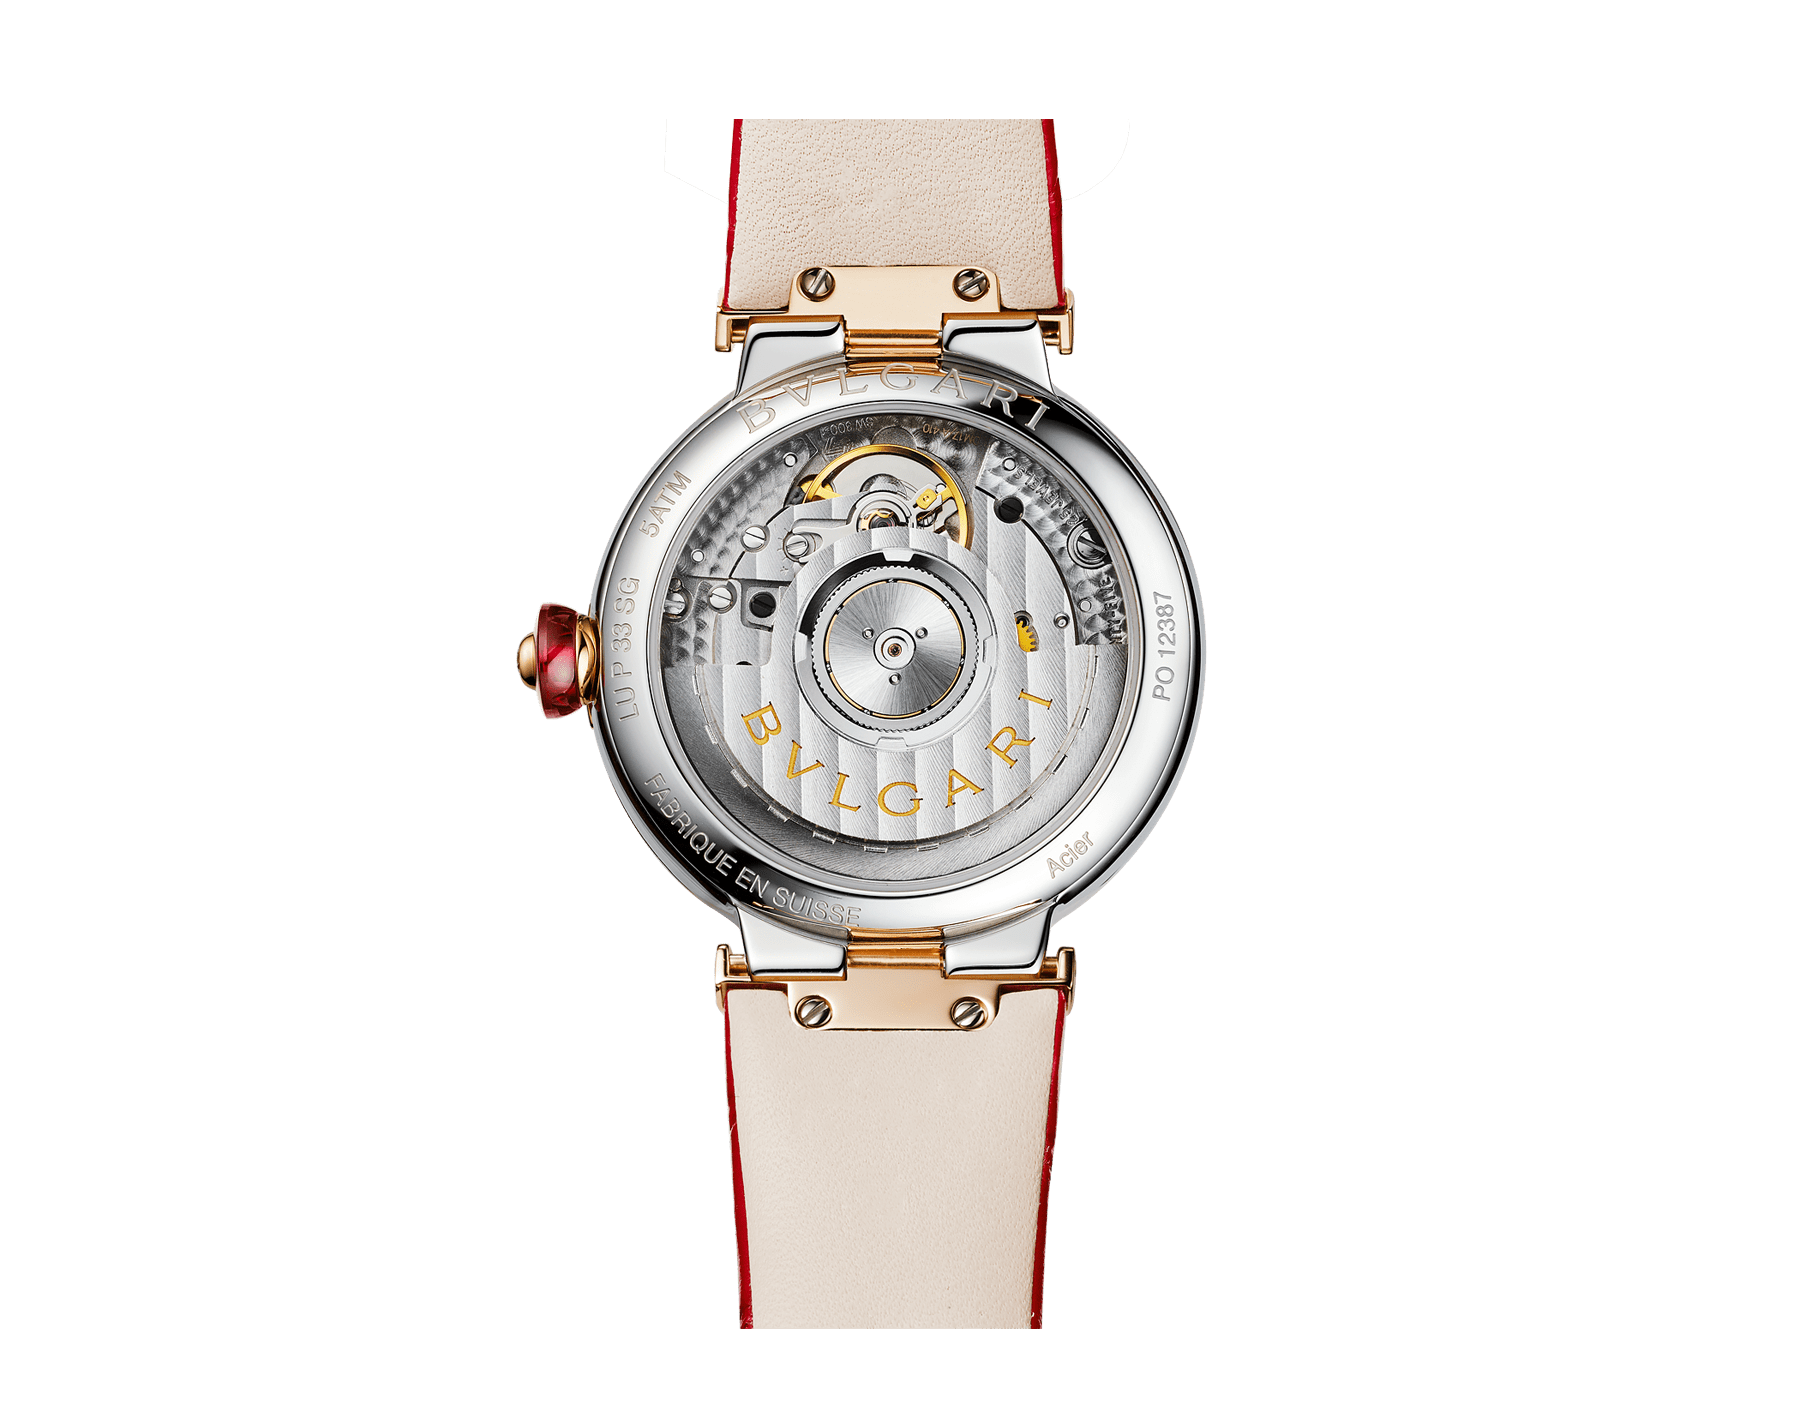 LVCEA watch with stainless steel case, 18 kt rose gold bezel, white mother-of-pearl dial, diamond indexes and fuchsia leather bracelet 102997 image 3